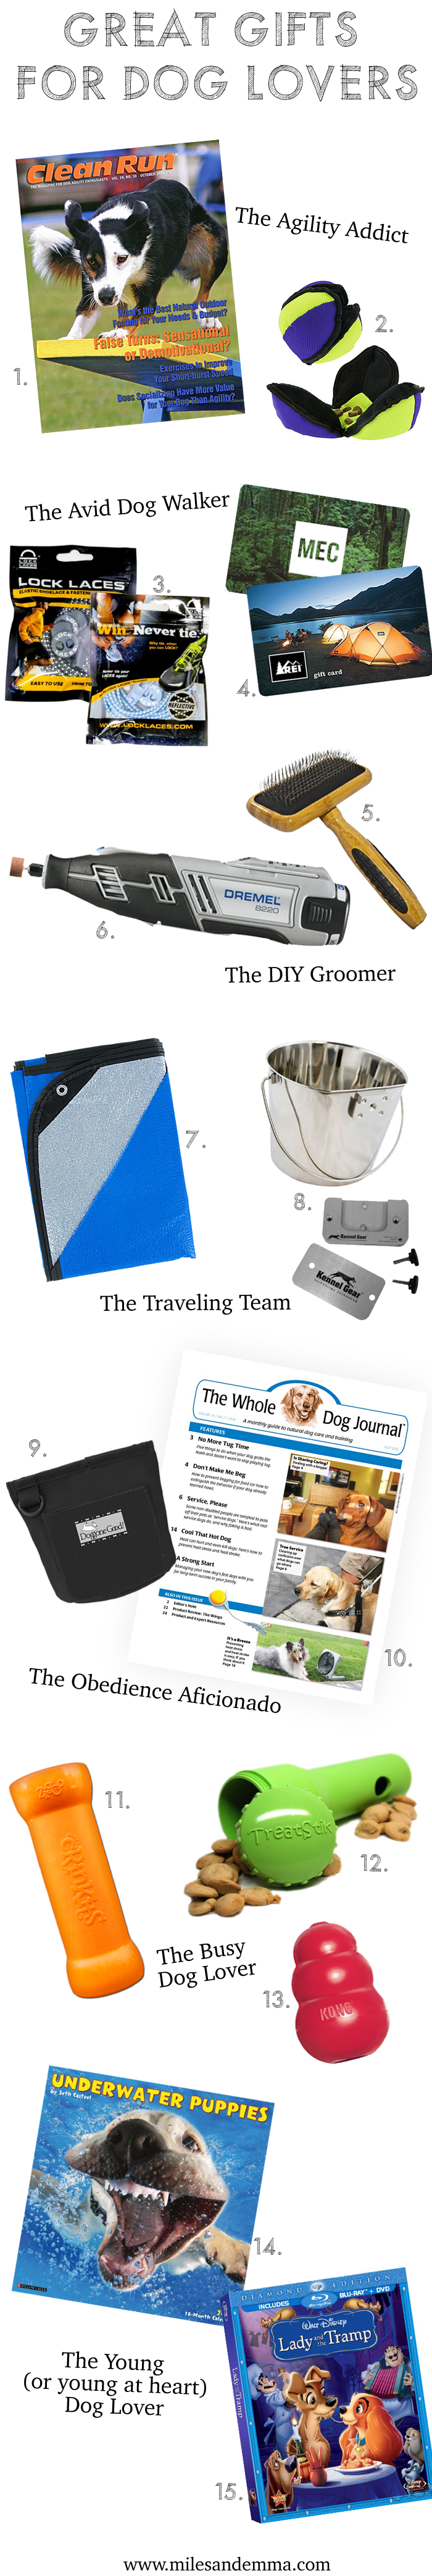 Great Gifts for Dog Lovers